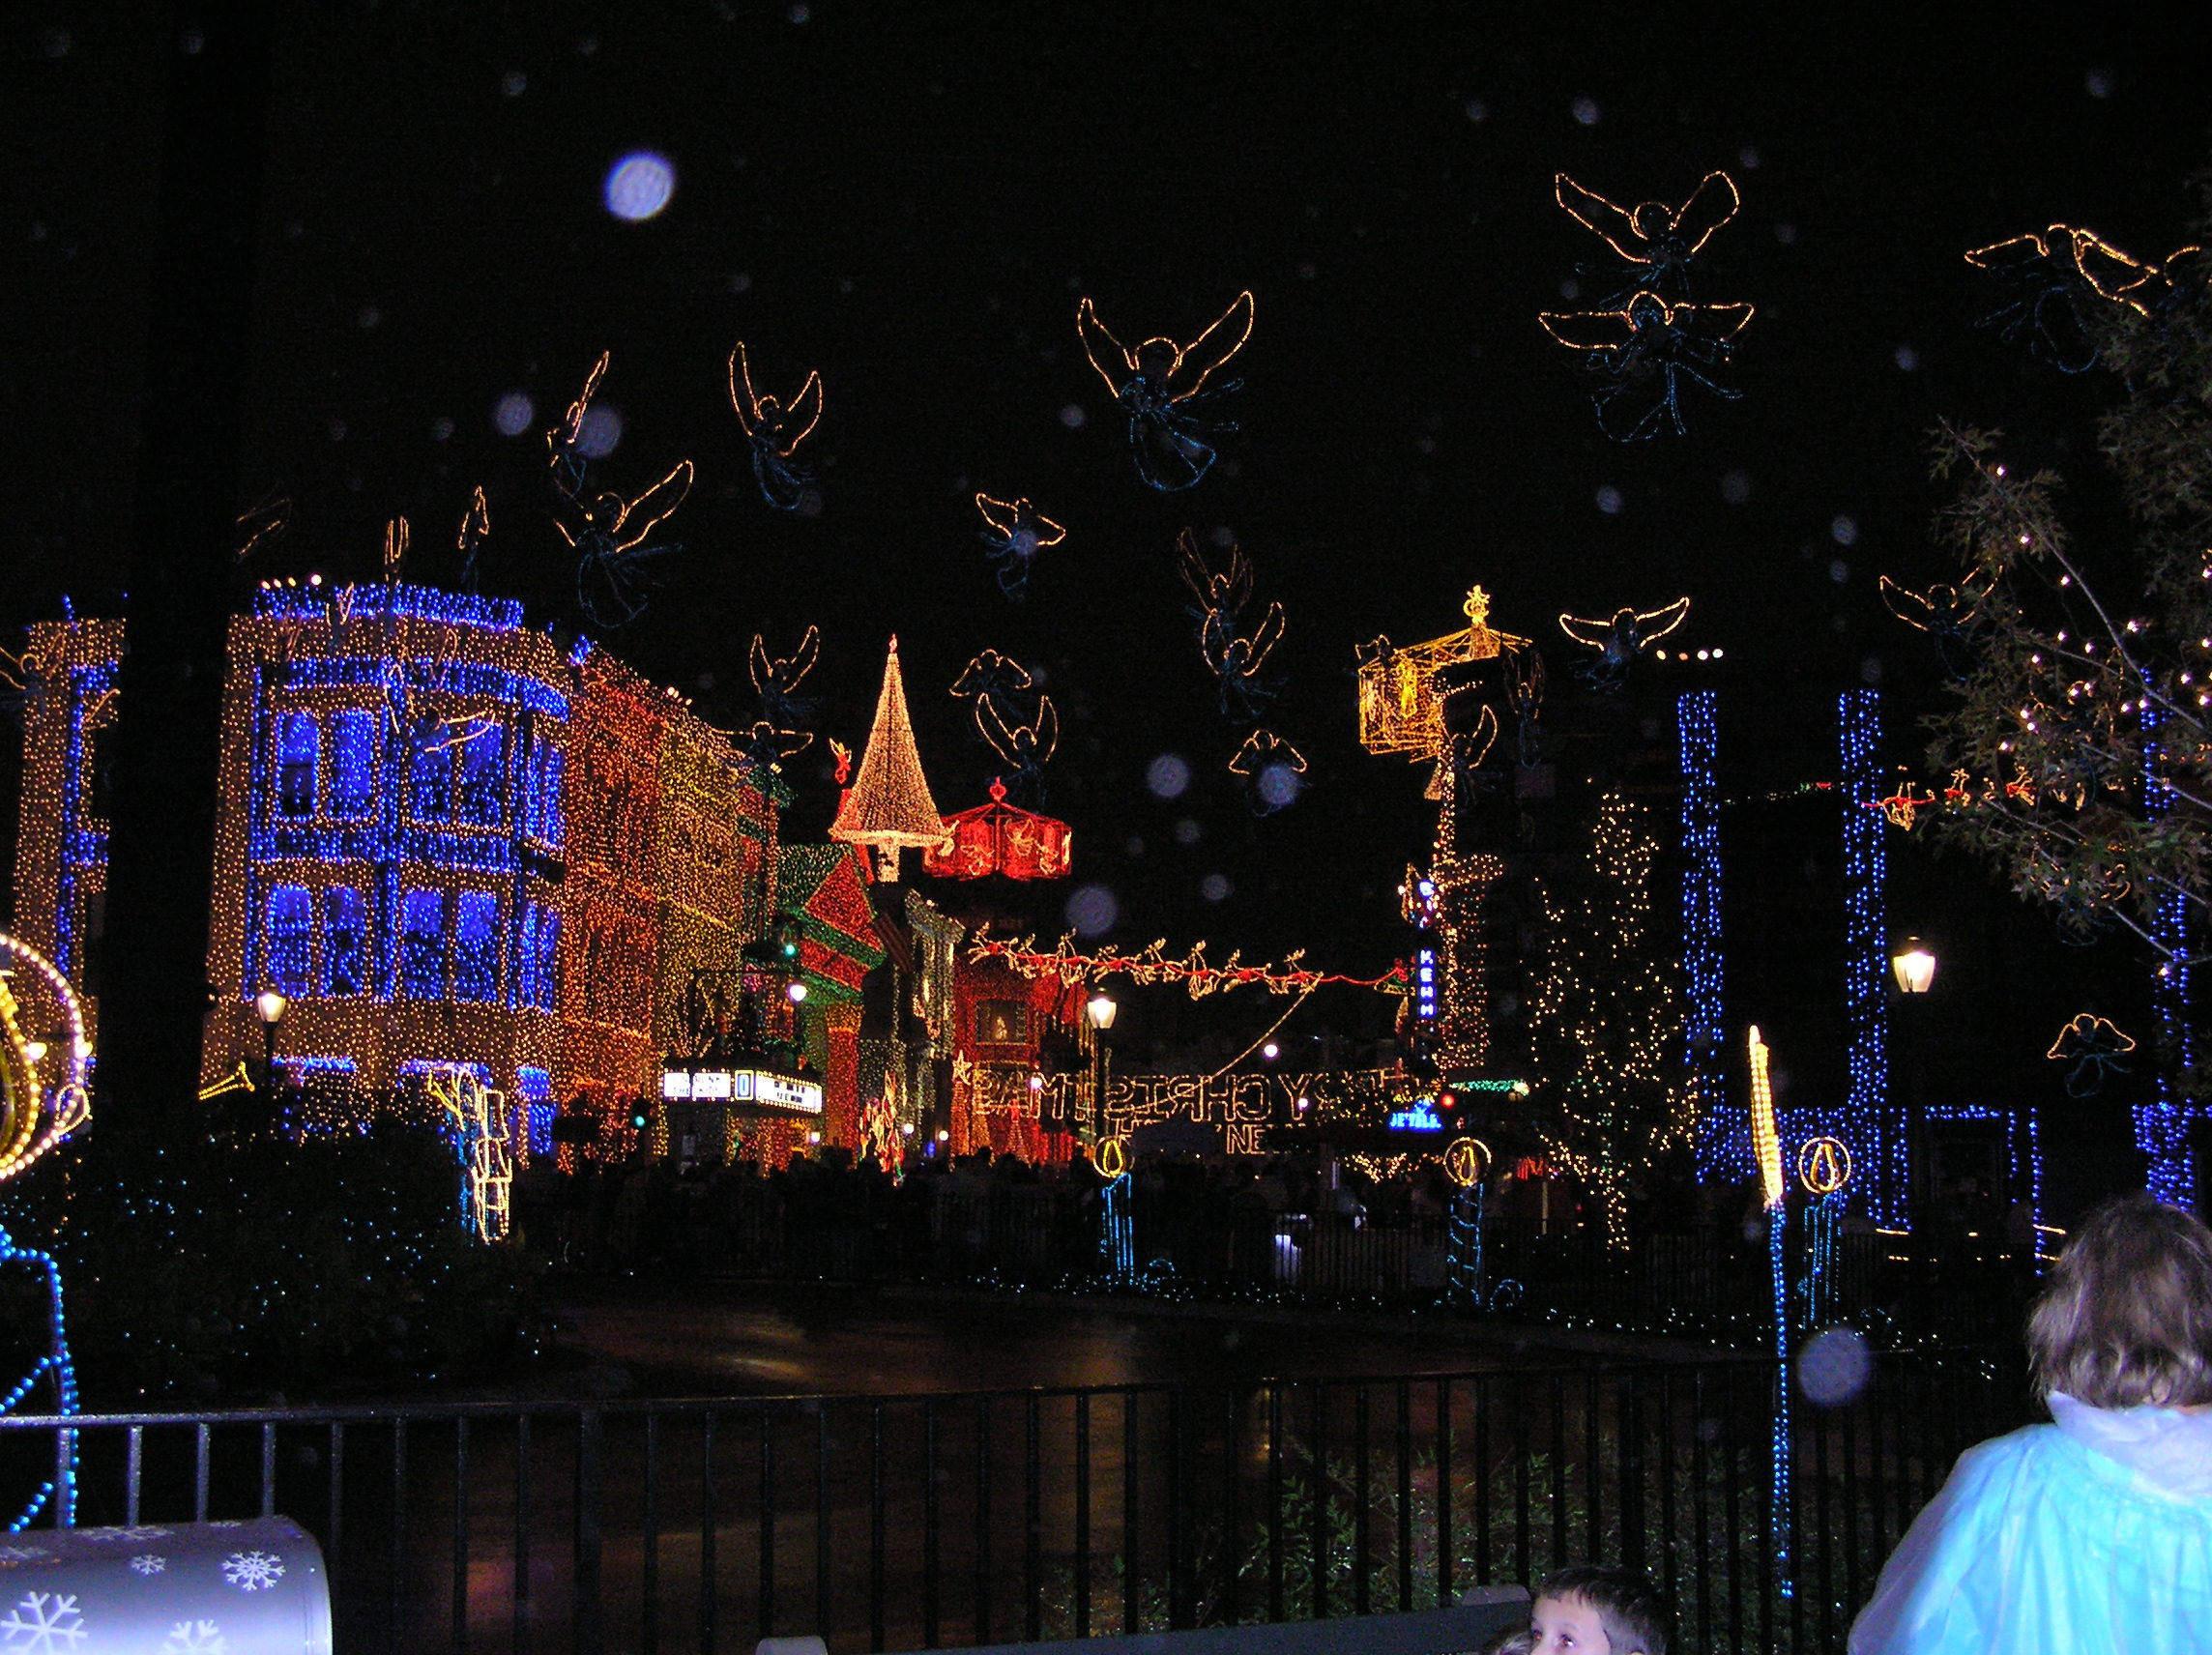 The Osborne Family Spectacle of Lights, a seasonal Christmas celebration at Disney's MGM Studios.